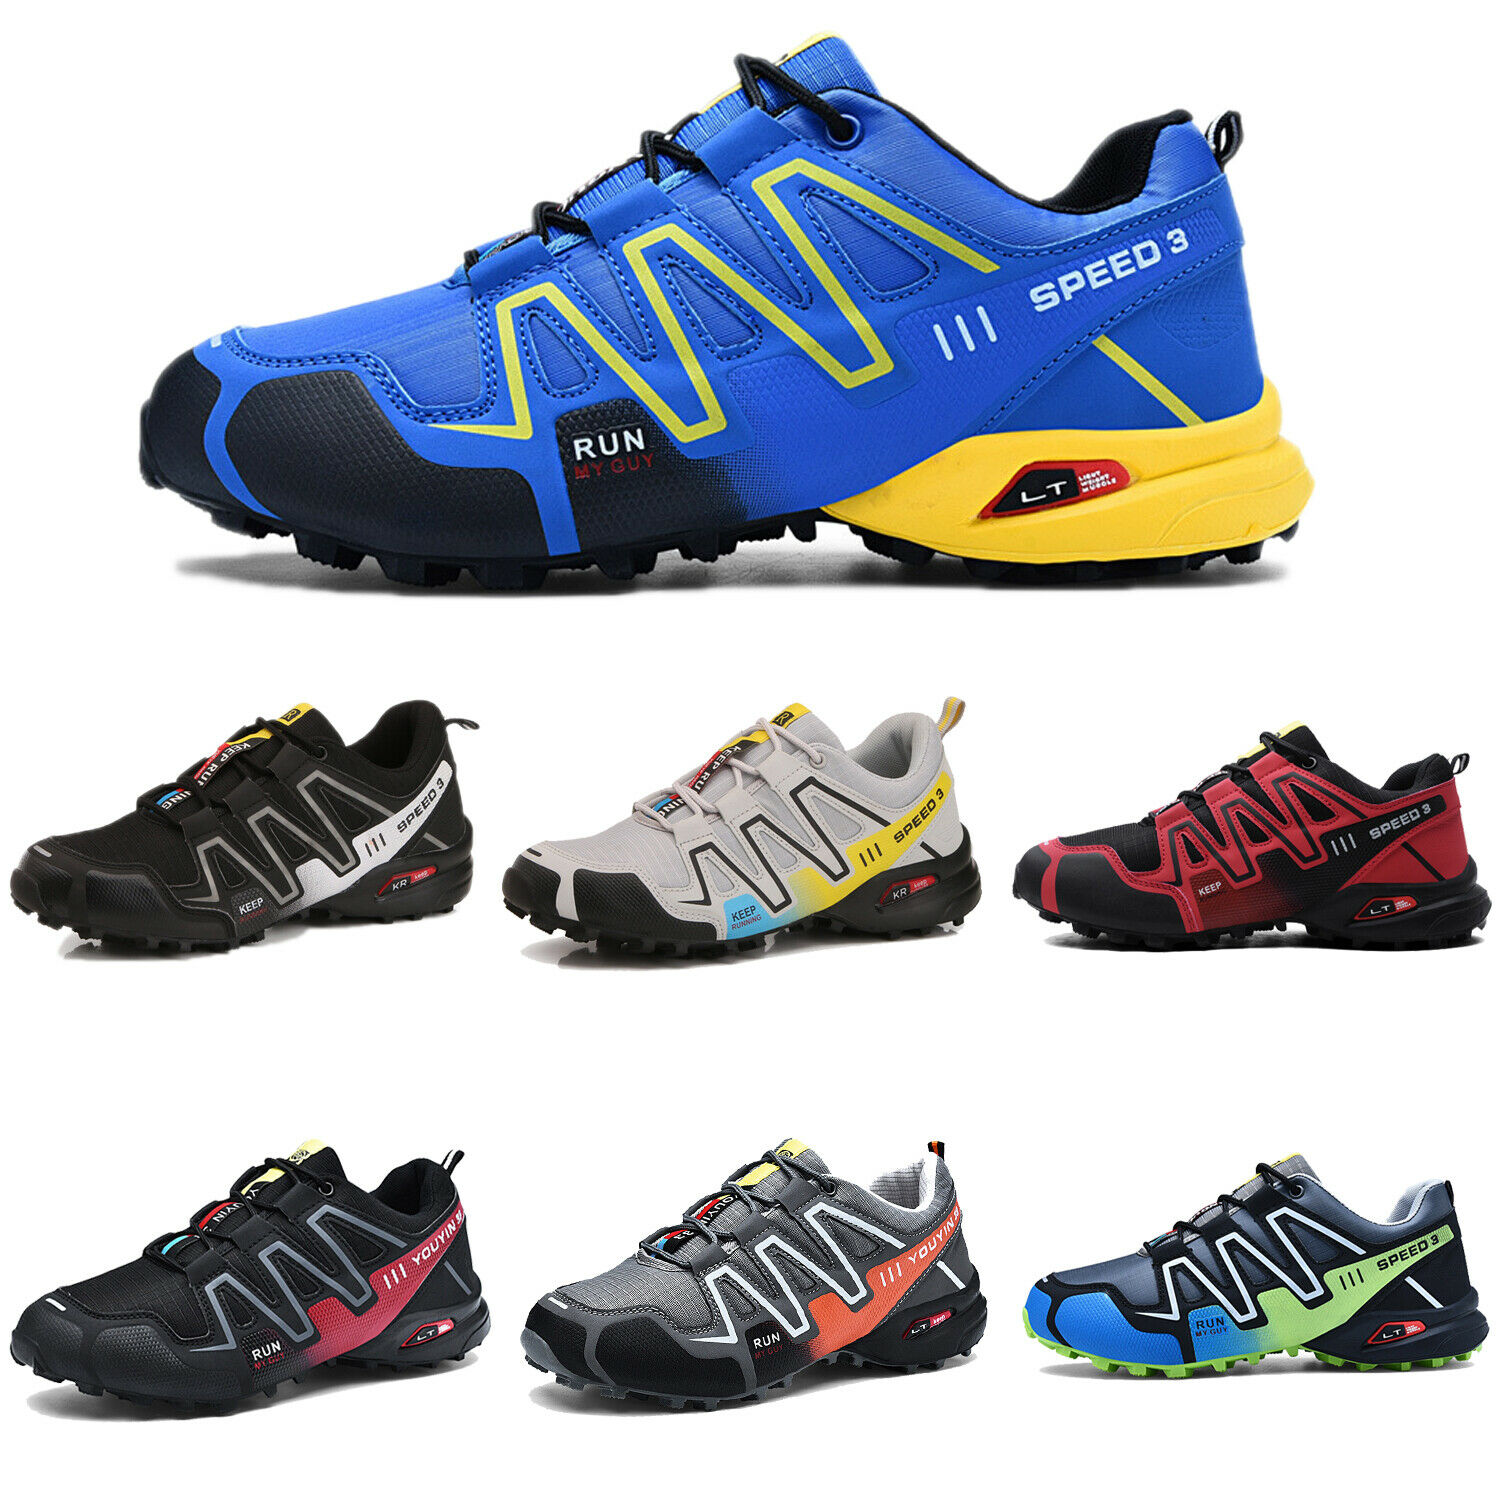 Men's Running Outdoor Off-Road Athletic Hiking Shoes Breathable Non-slip Boots